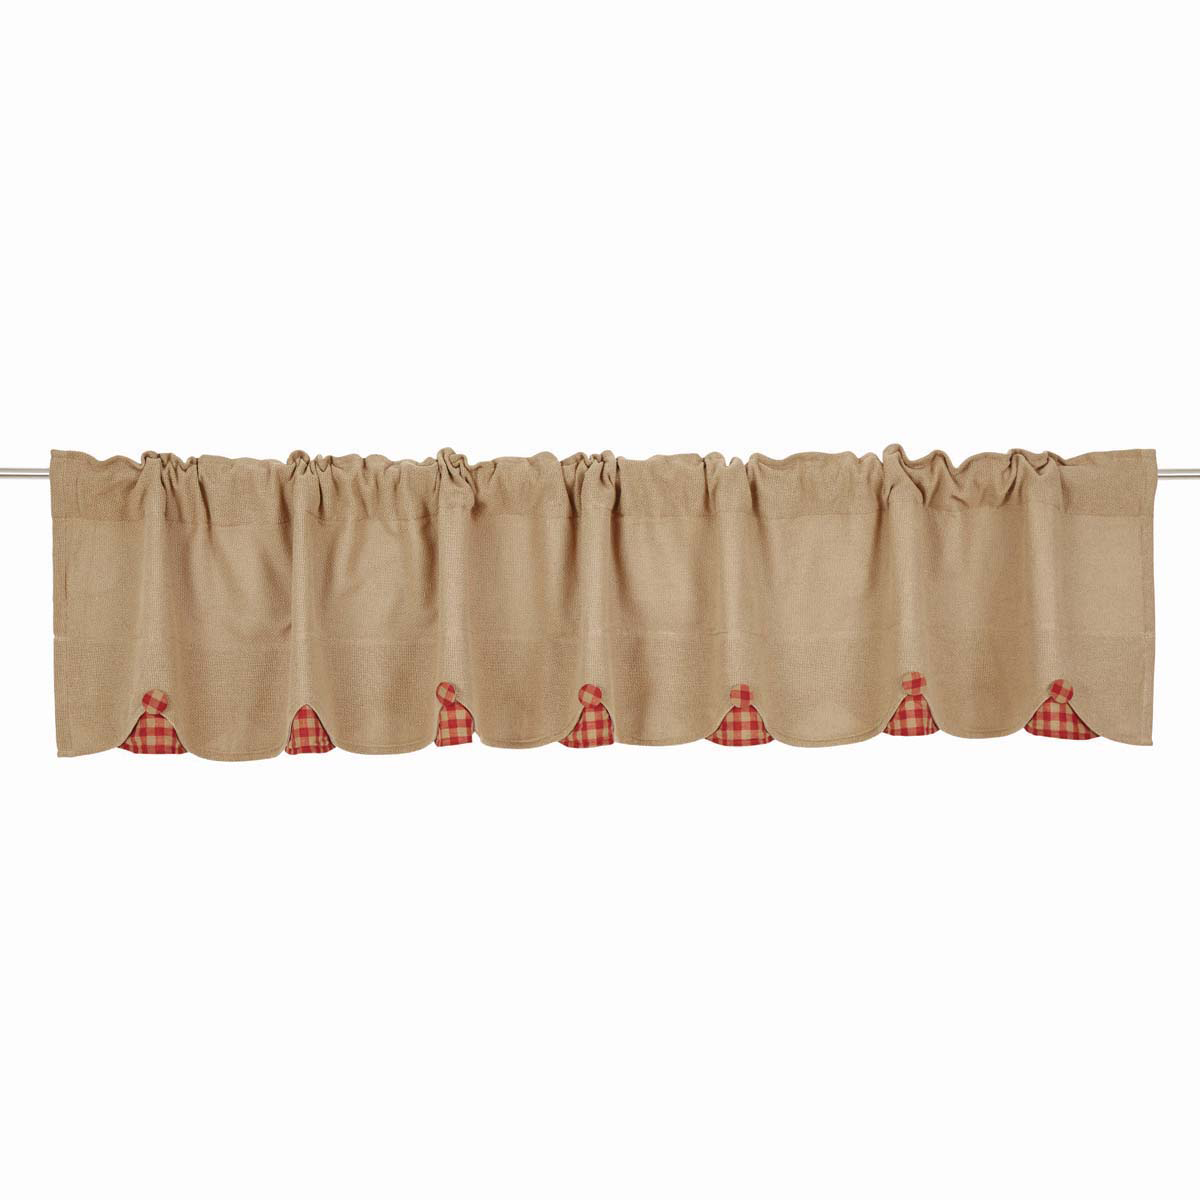 BURLAP NATURAL Valance w/Red Check - 16x90 - Country Farmhouse - VHC Brands